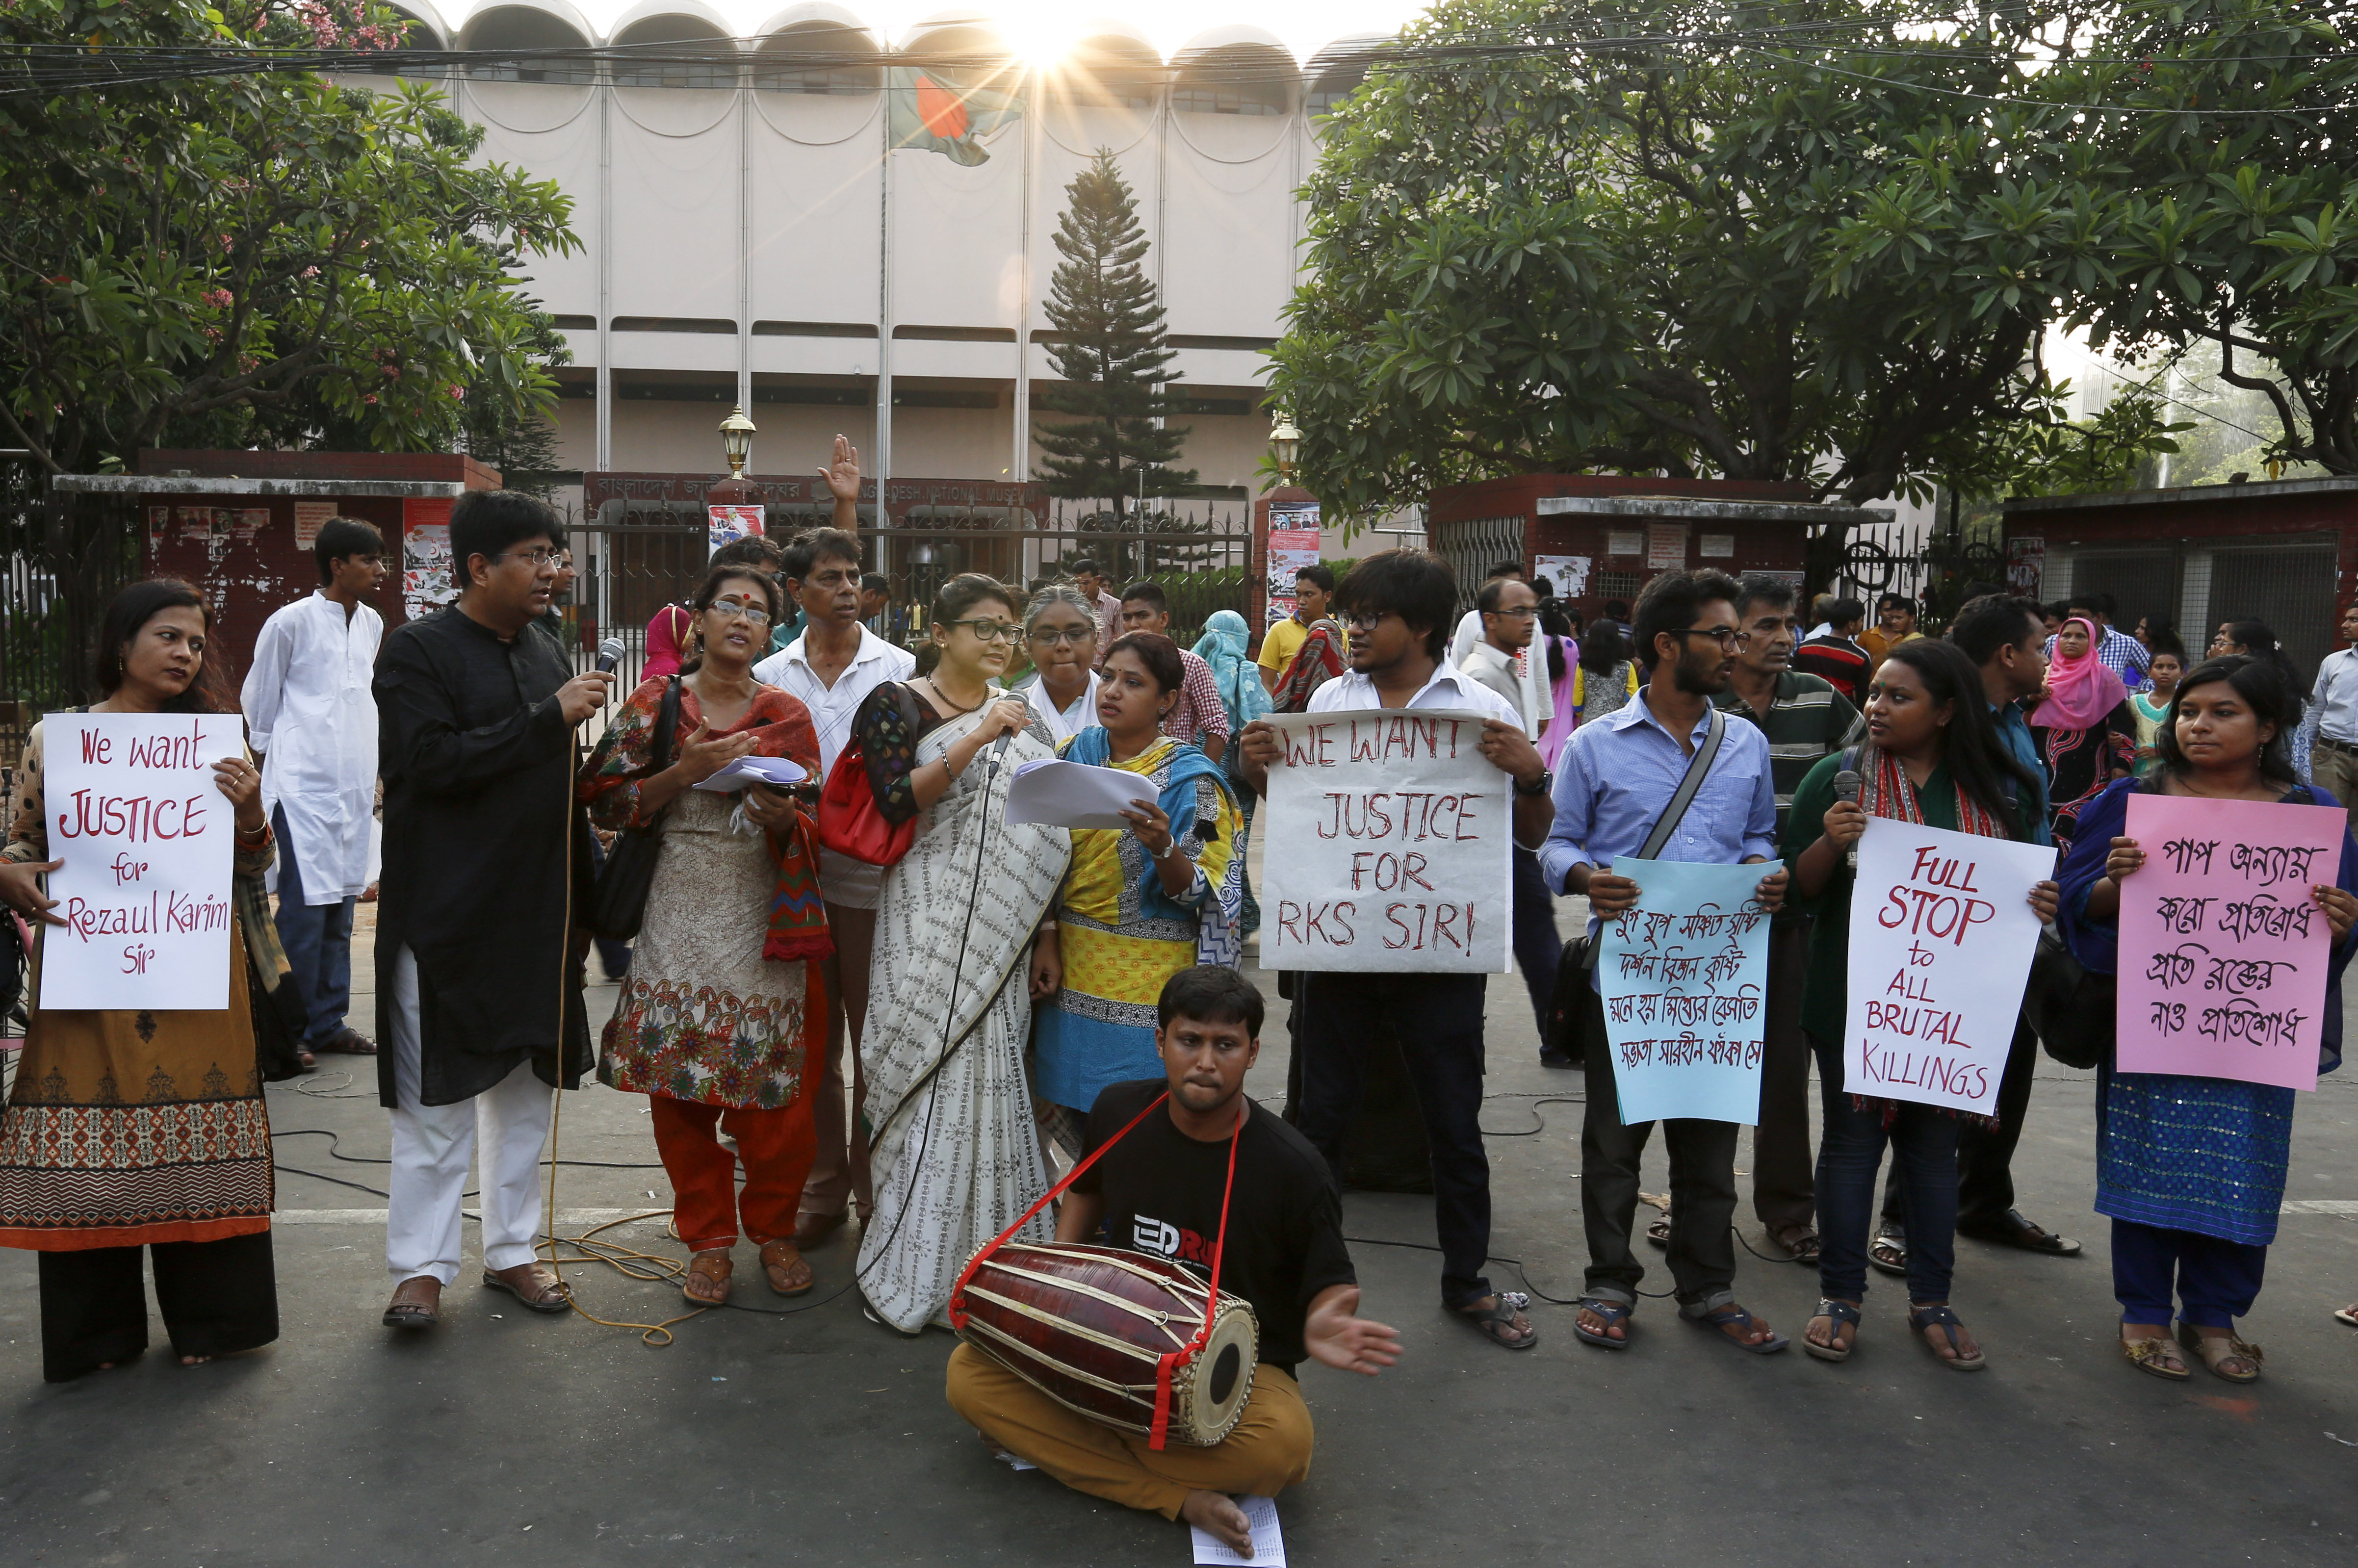 Bangladeshi teachers, students and social activists hold banners and sing songs during a protest against the killing of Professor A.F.M. Rezaul Karim Siddique in Dhaka, Bangladesh, on April 29, 2016. Siddique was hacked to death on his way to work at the state-run university in the Bangladeshi city of Rajshahi on April 23, 2016, where he taught English